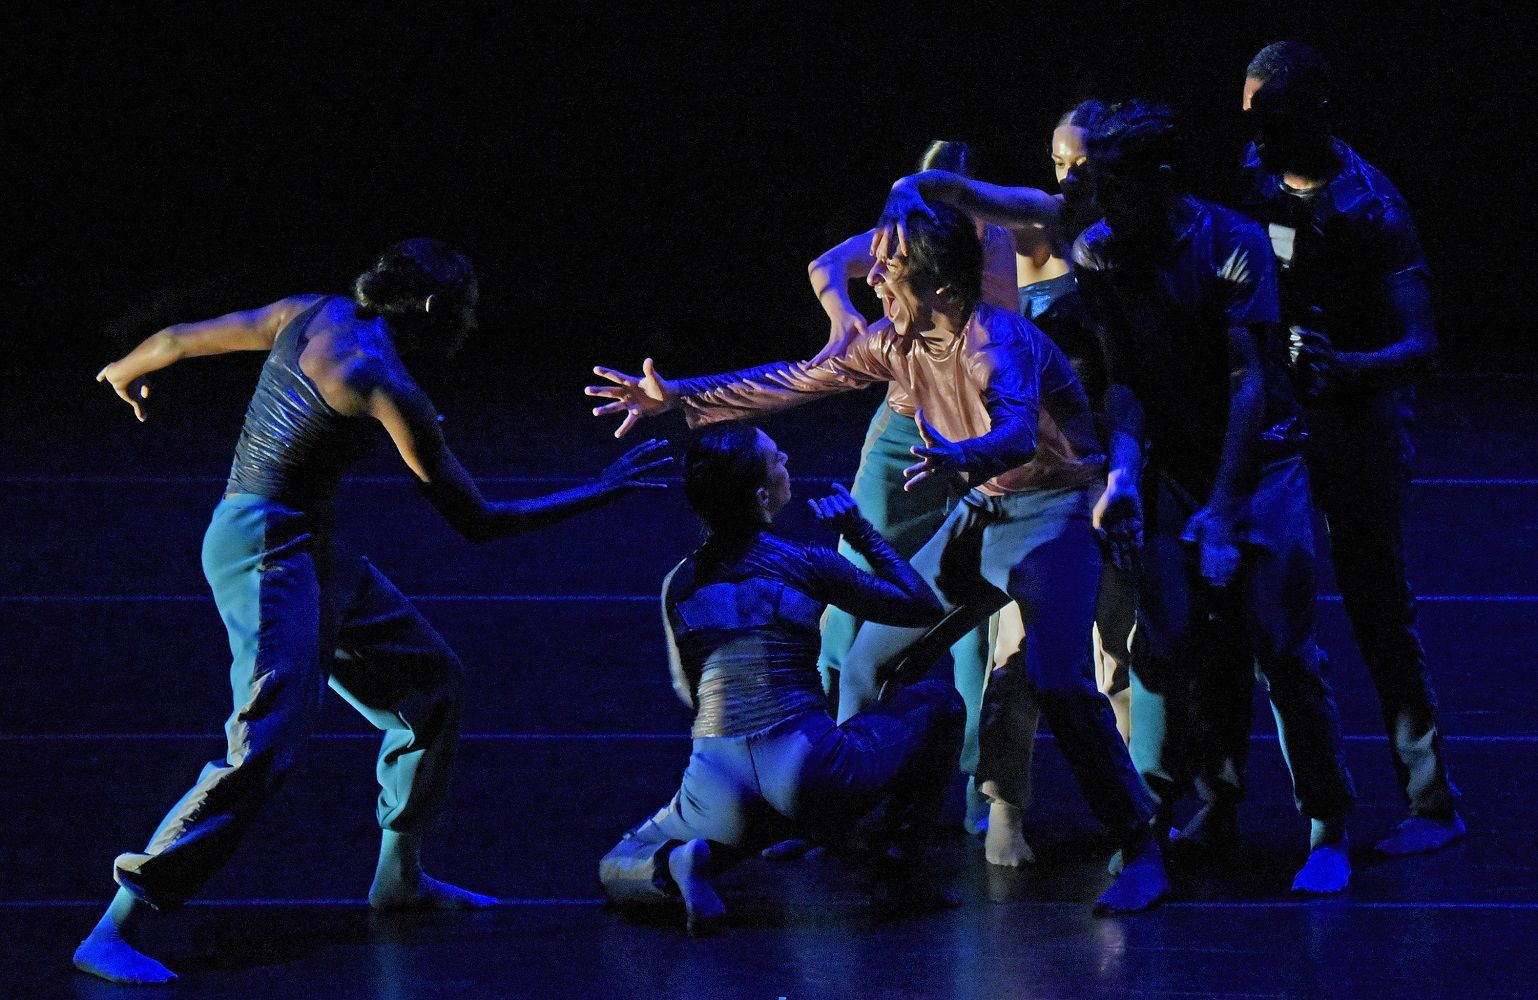 BODYTRAFFIC Gives a Very Strong Performance at the Irvine Barclay Theatre